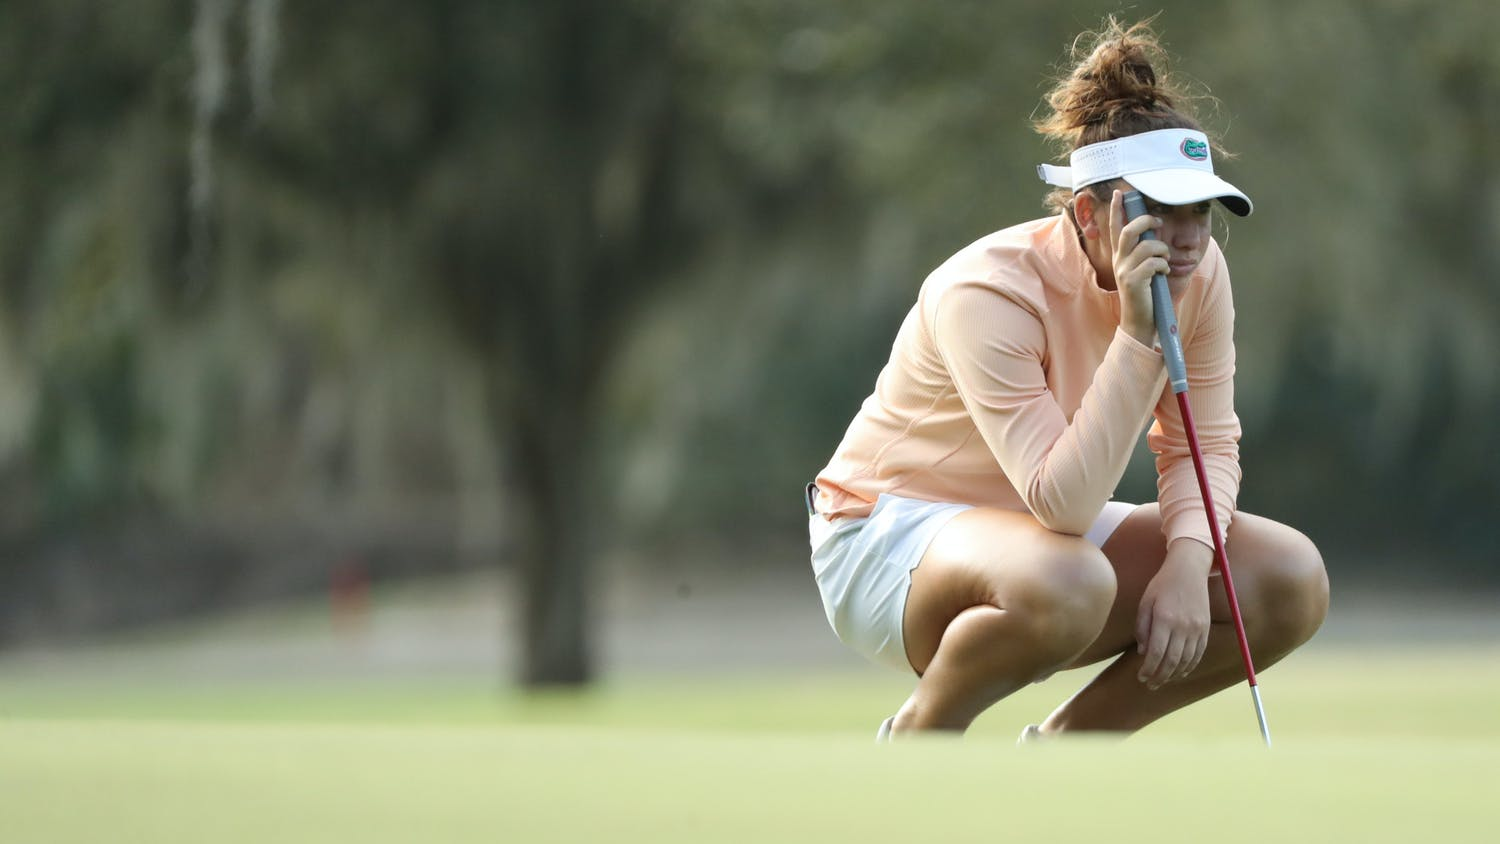 Clara Manzalini at the Mark Bostick Golf Course in Gainesville, Florida, on Monday, February 22, 2021  / UAA Communications photo by Isabella Marley